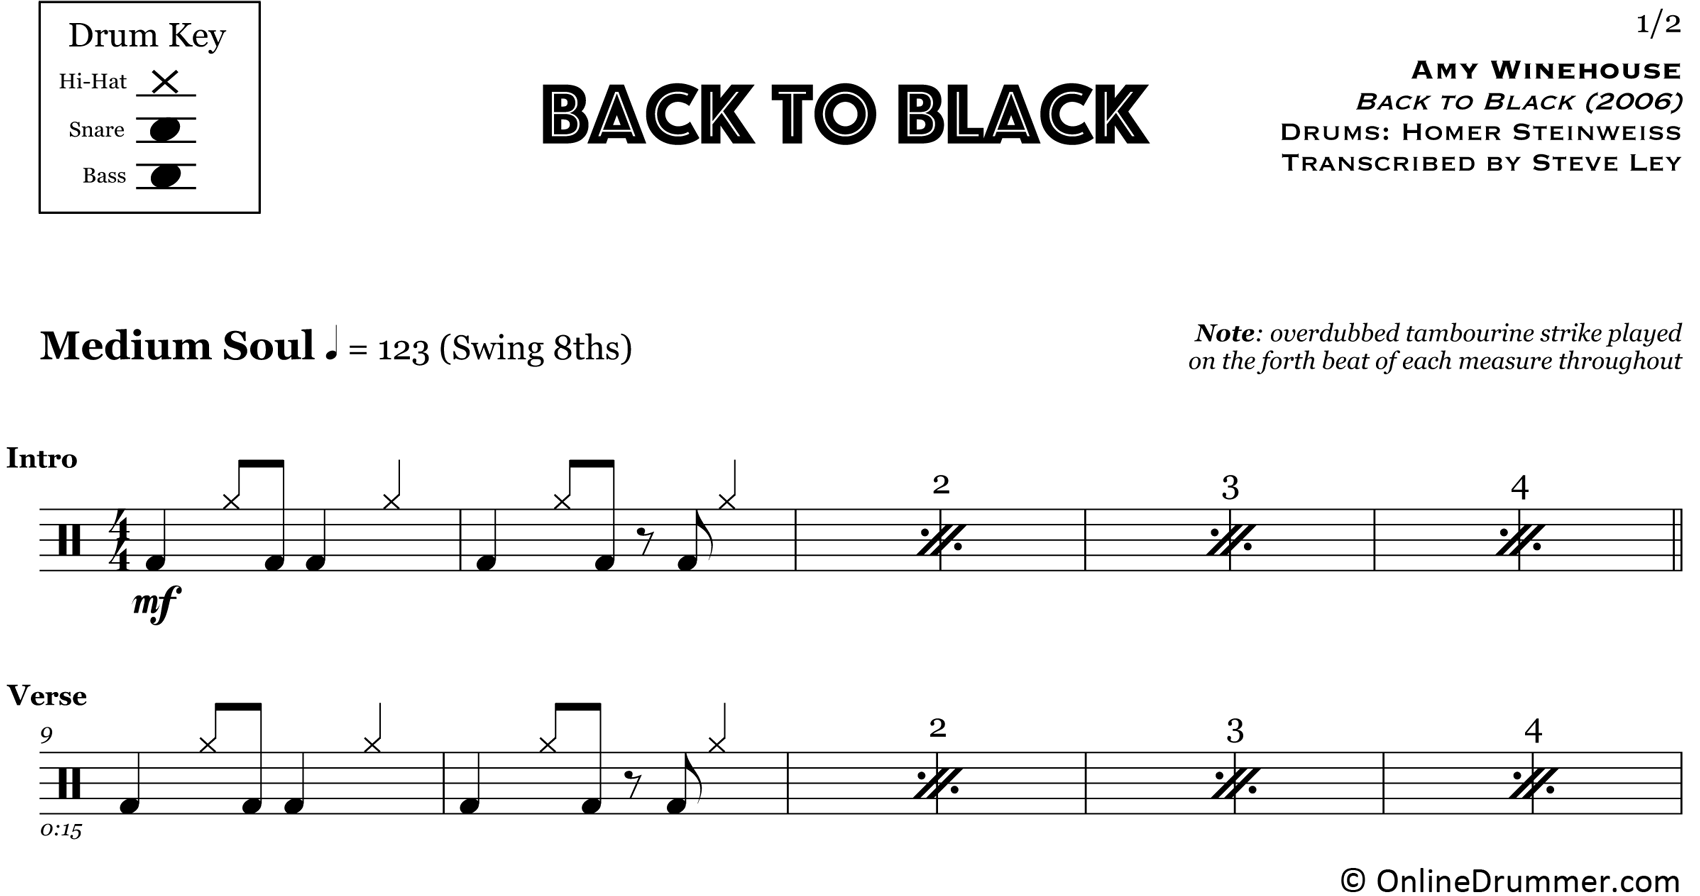 xBack-to-Black-Amy-Winehouse-Drum-Sheet-Music-1.png.pagespeed.ic.u9yNmGgdqp.jpg